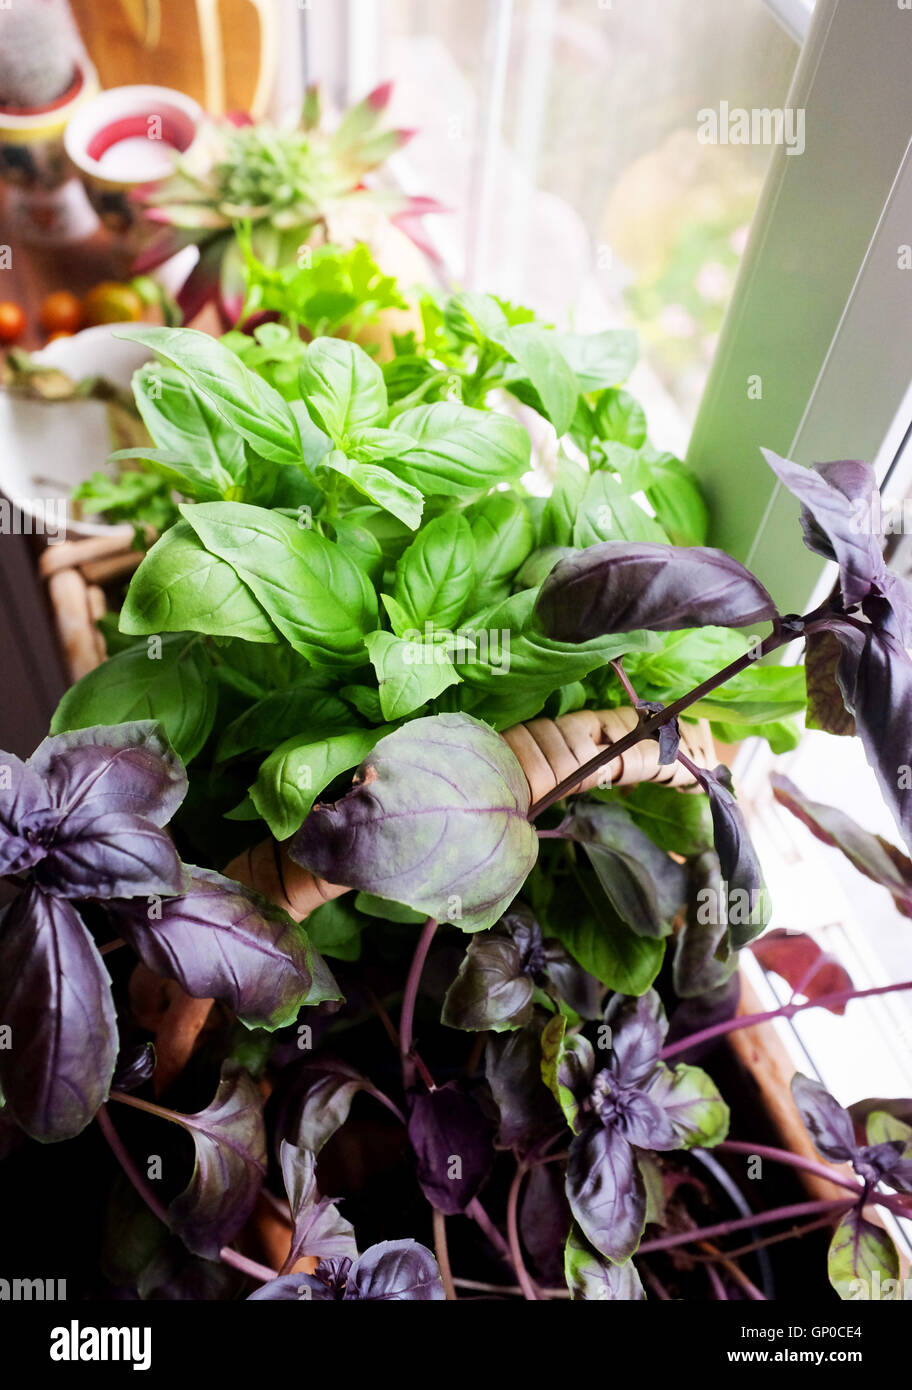 Green and purple basil herbs growing in pots on kitchen Kitchen windowsill herb pots